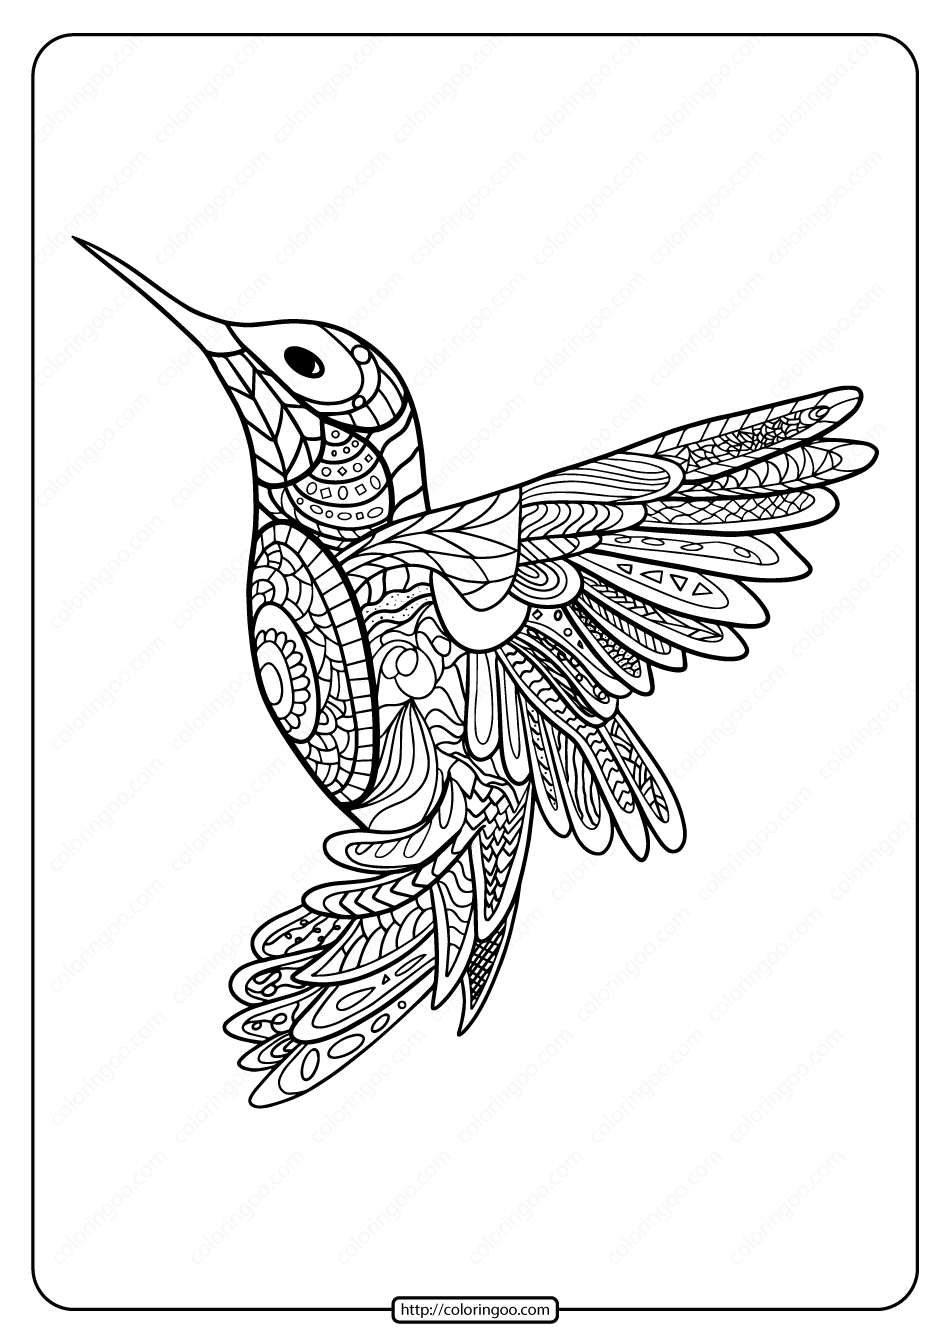 Printable Hummingbird Mandala Coloring Page